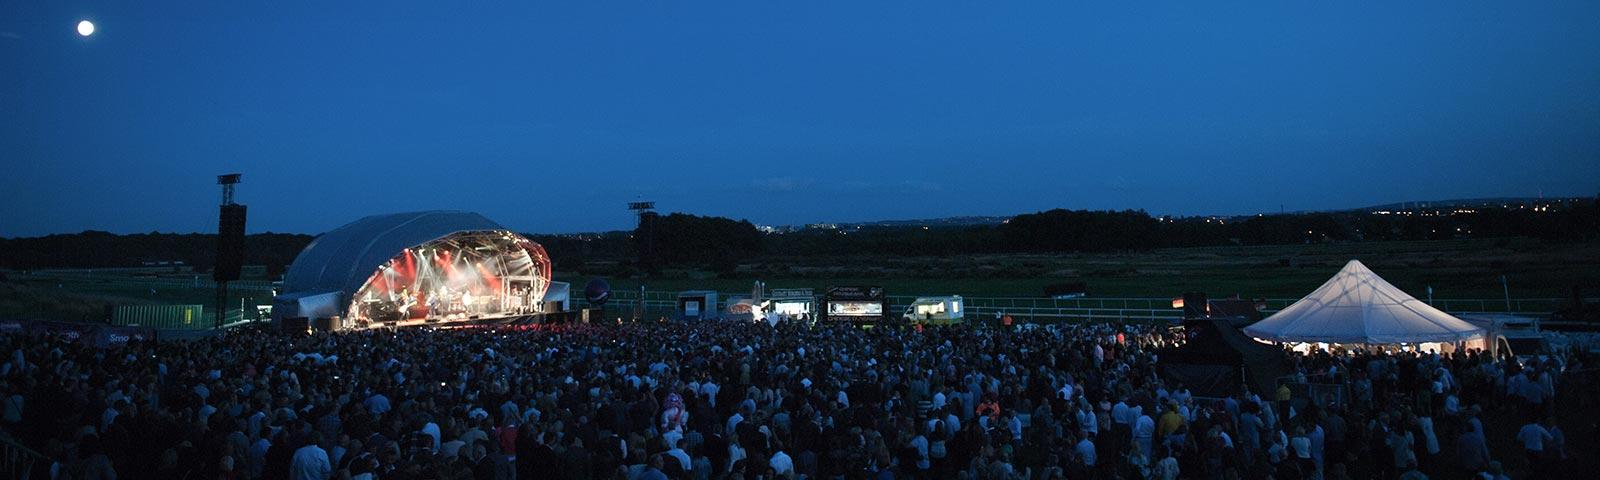 a crowd of people enjoying a live music concert at one of Arena Racing Company's venues